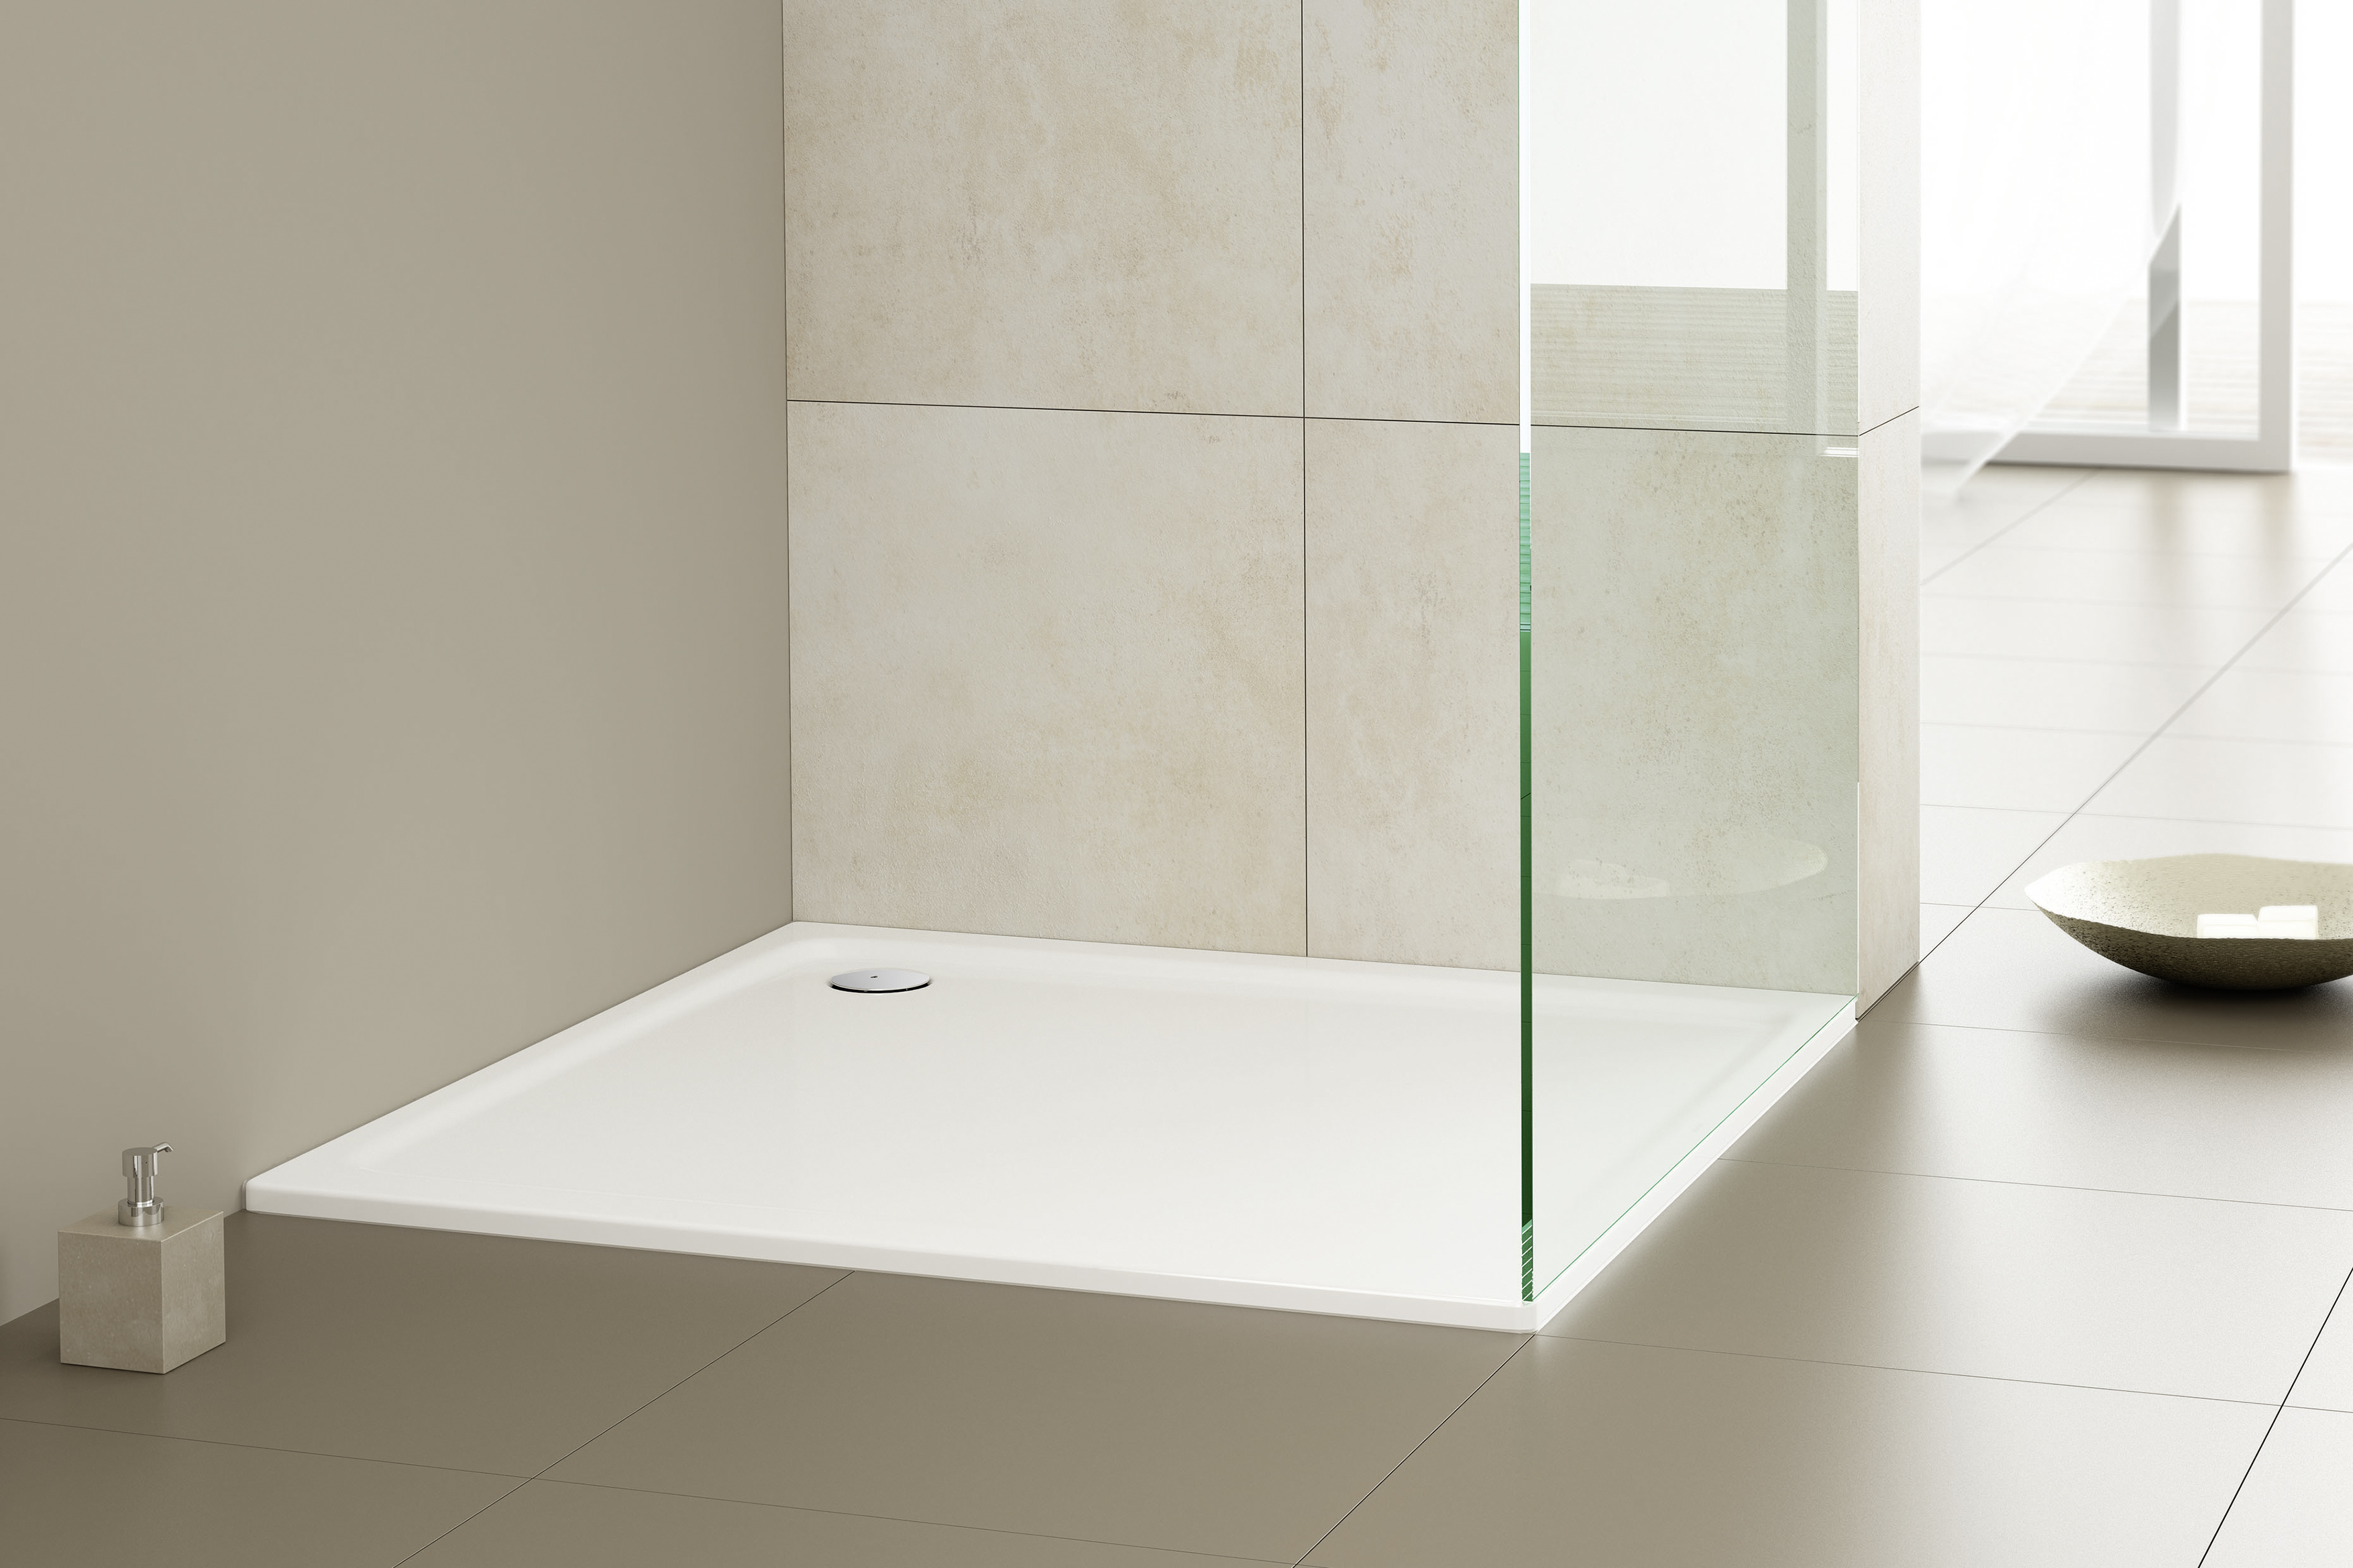 Kaldewei Duschtasse New Complete System For Shower Surfaces From Kaldewei